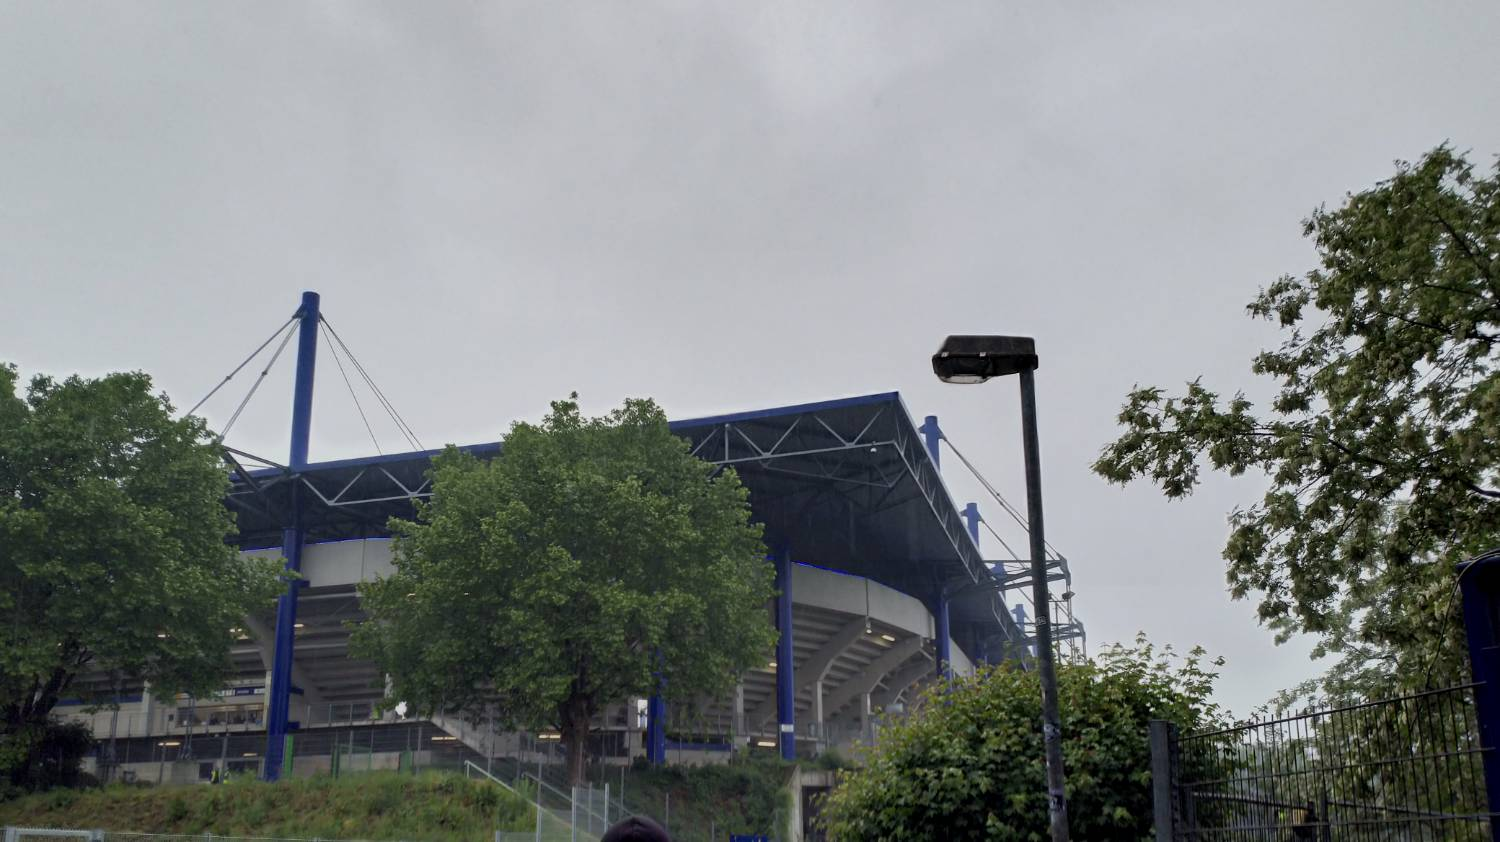 35 Stadion Msv Duisburg, FC St. Pauli Gaesteeingang